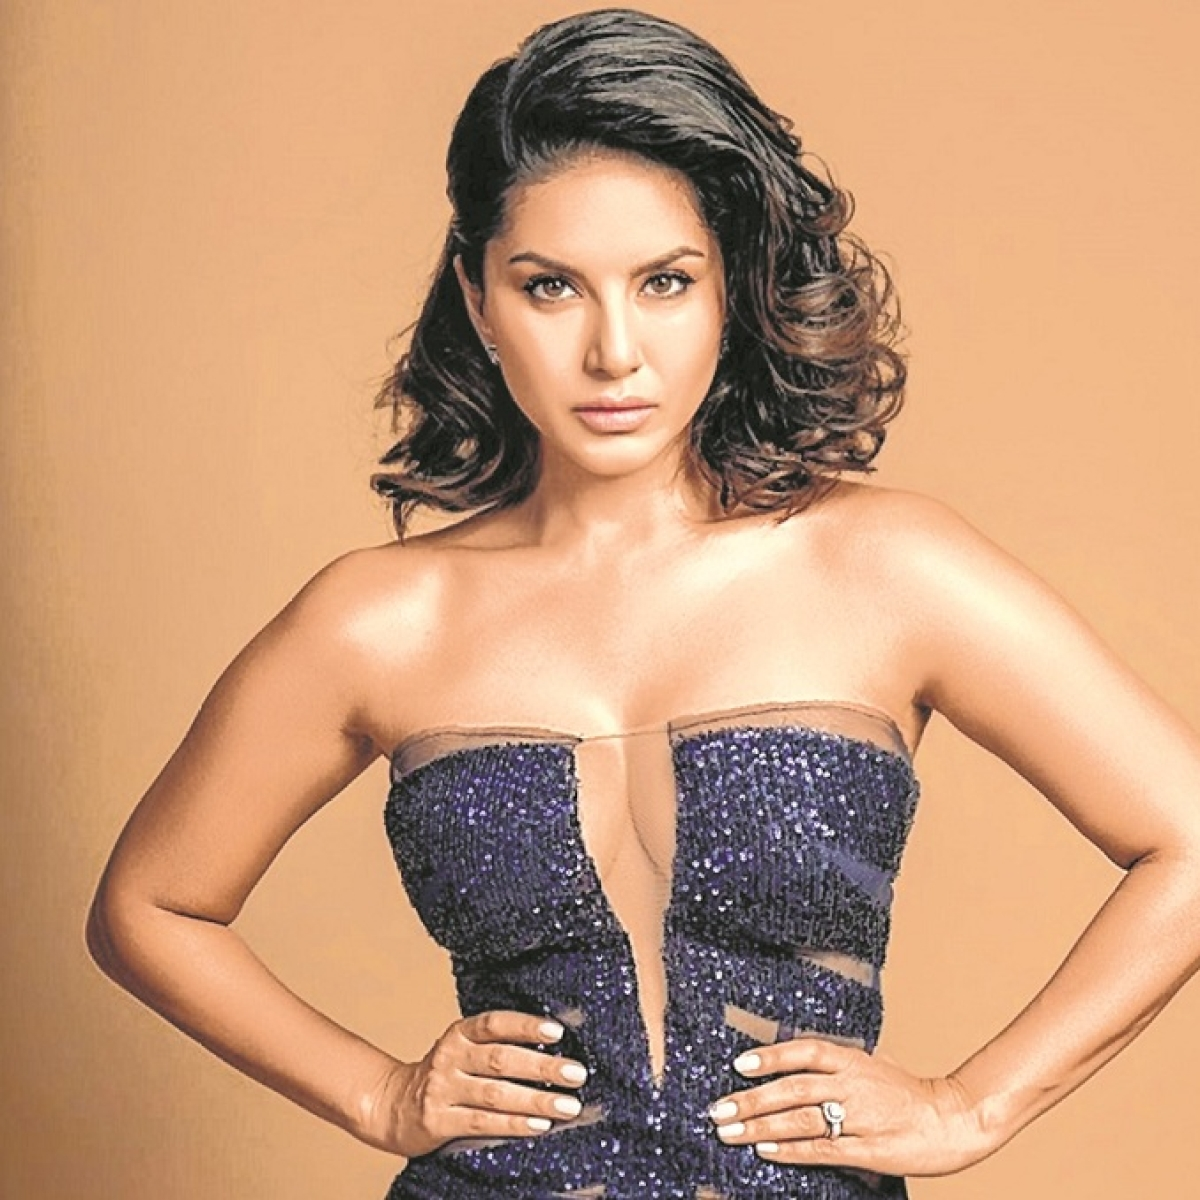 'Concept of dating changes every year,' says Sunny Leone